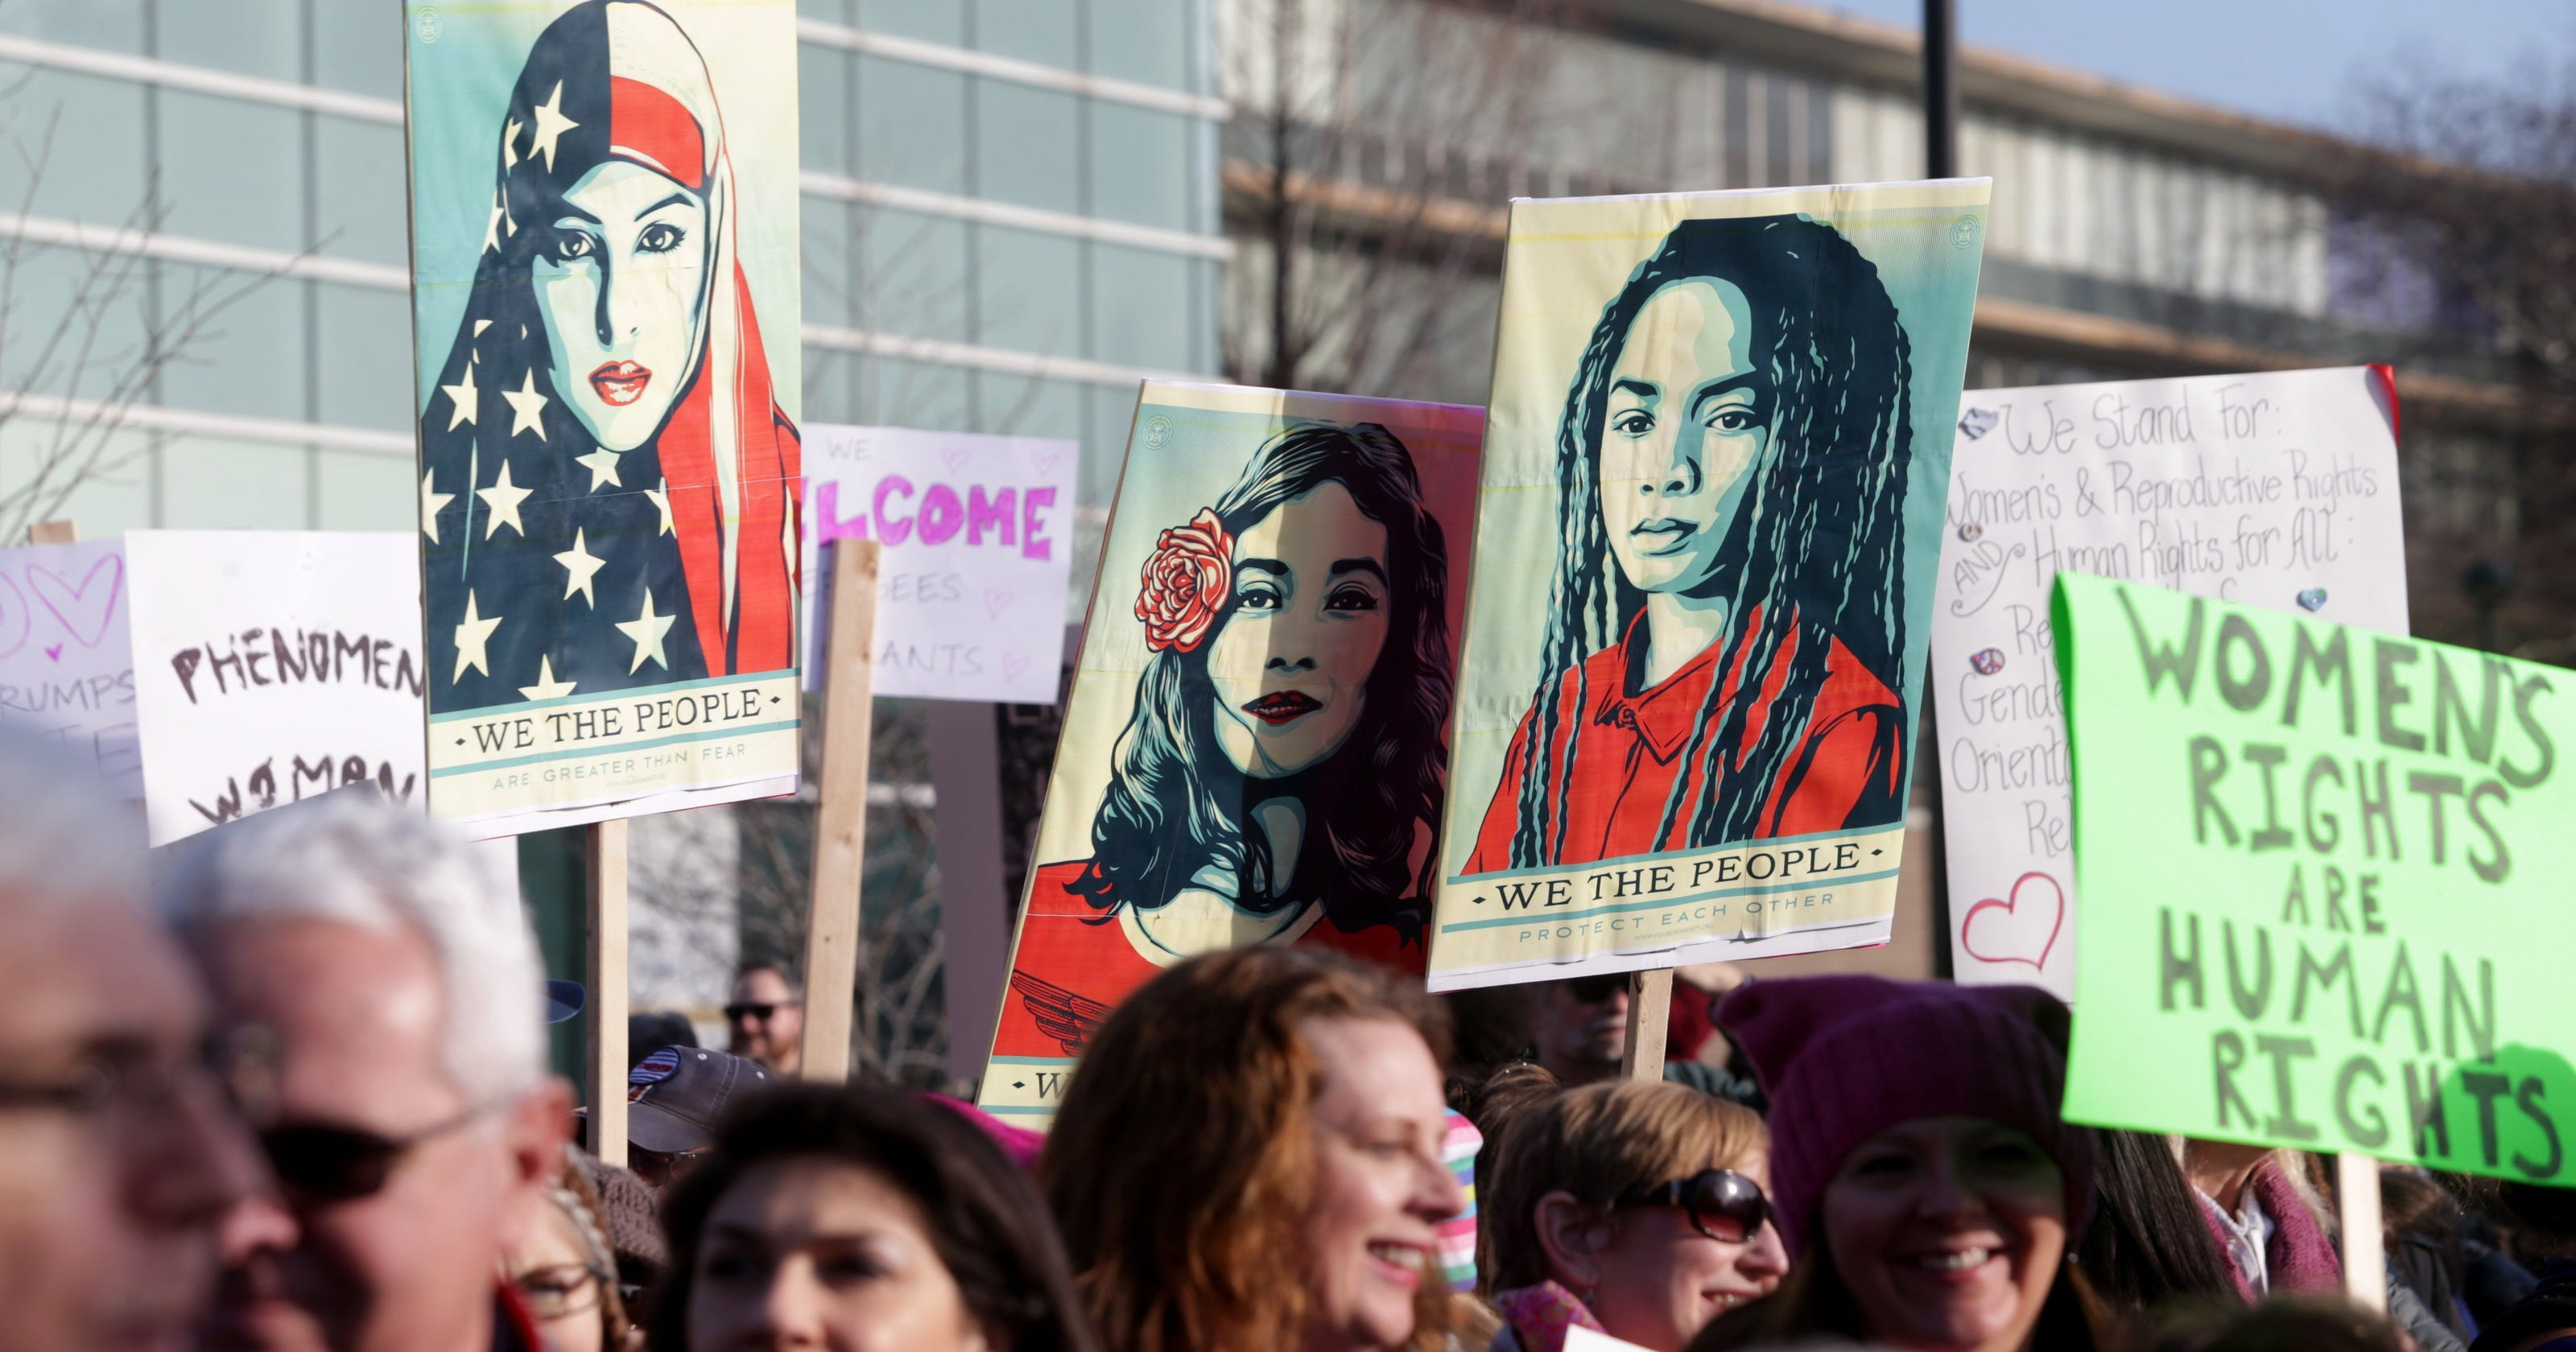 Women s Convention aims to  get real about fighting ... oppression  f2f2bb984